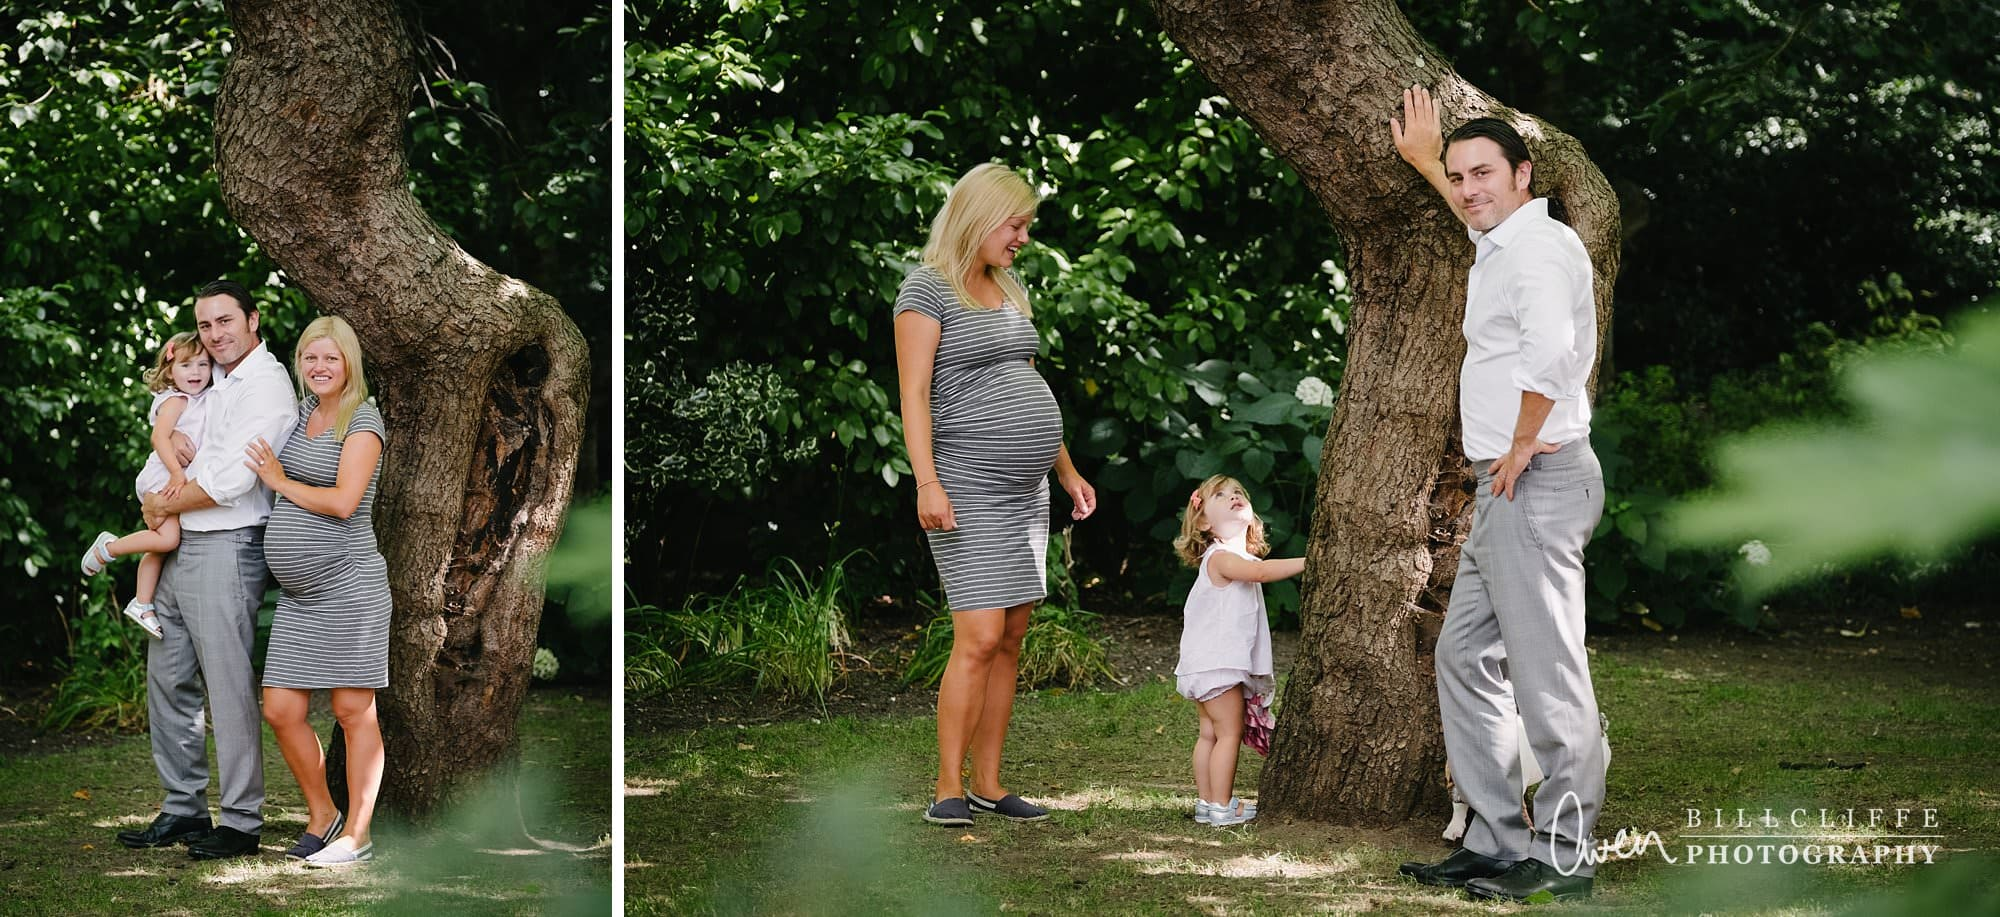 london family photographer london belgravia w1 007 - Belgravia Family Photography | The W Family